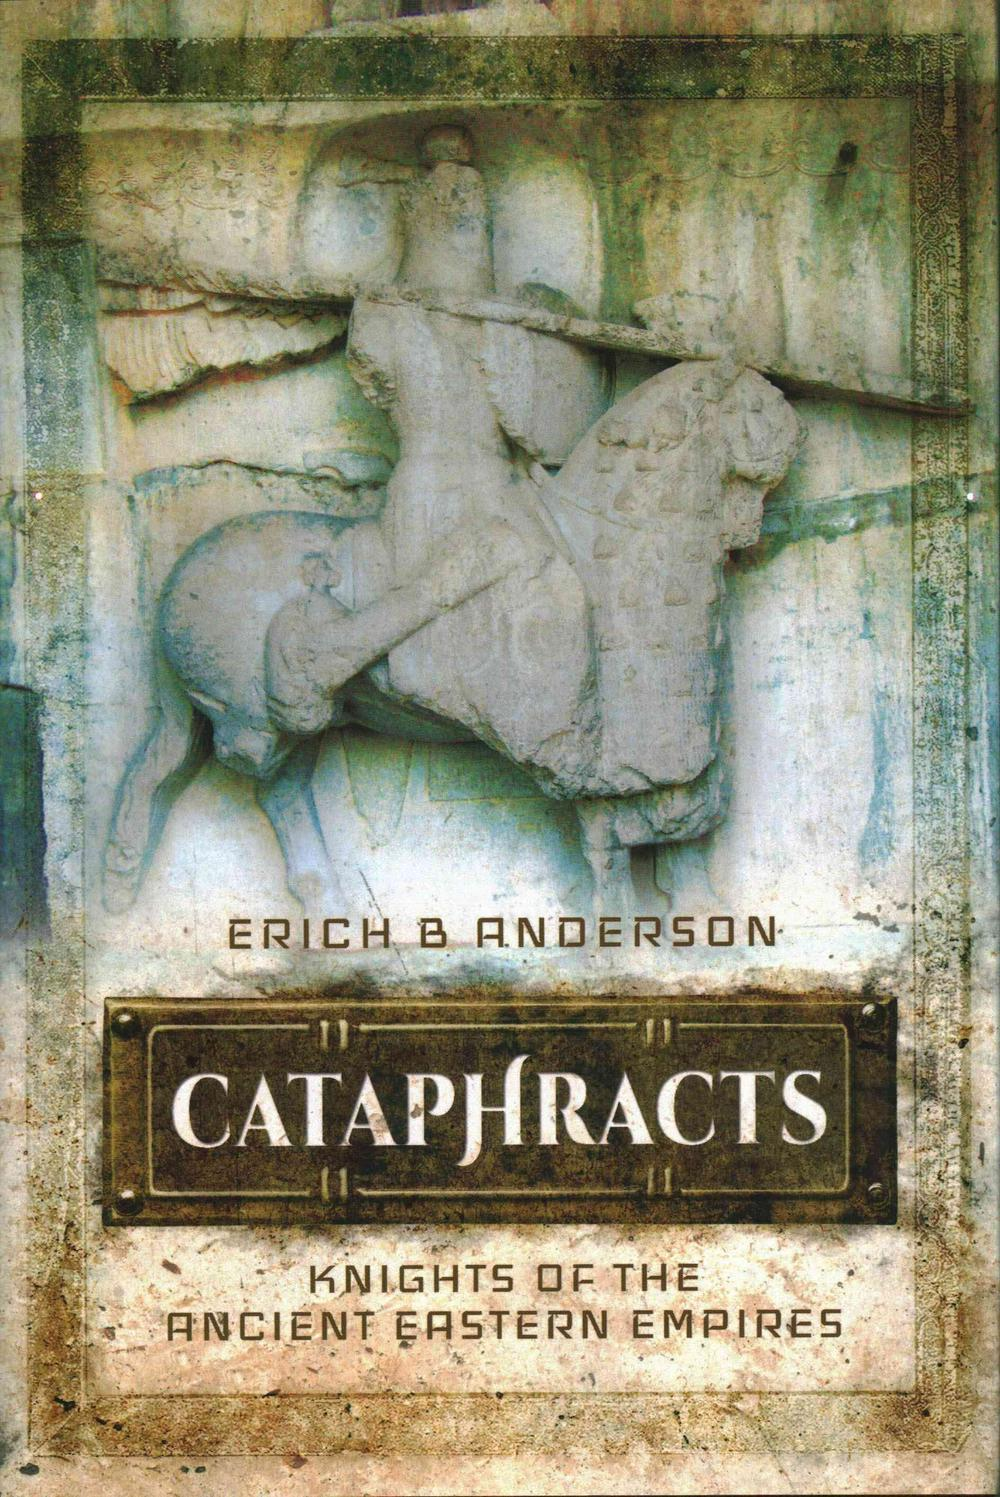 Cataphracts: Knights of the Ancient Eastern Empires by Erich B. Anderson, ISBN: 9781473837980